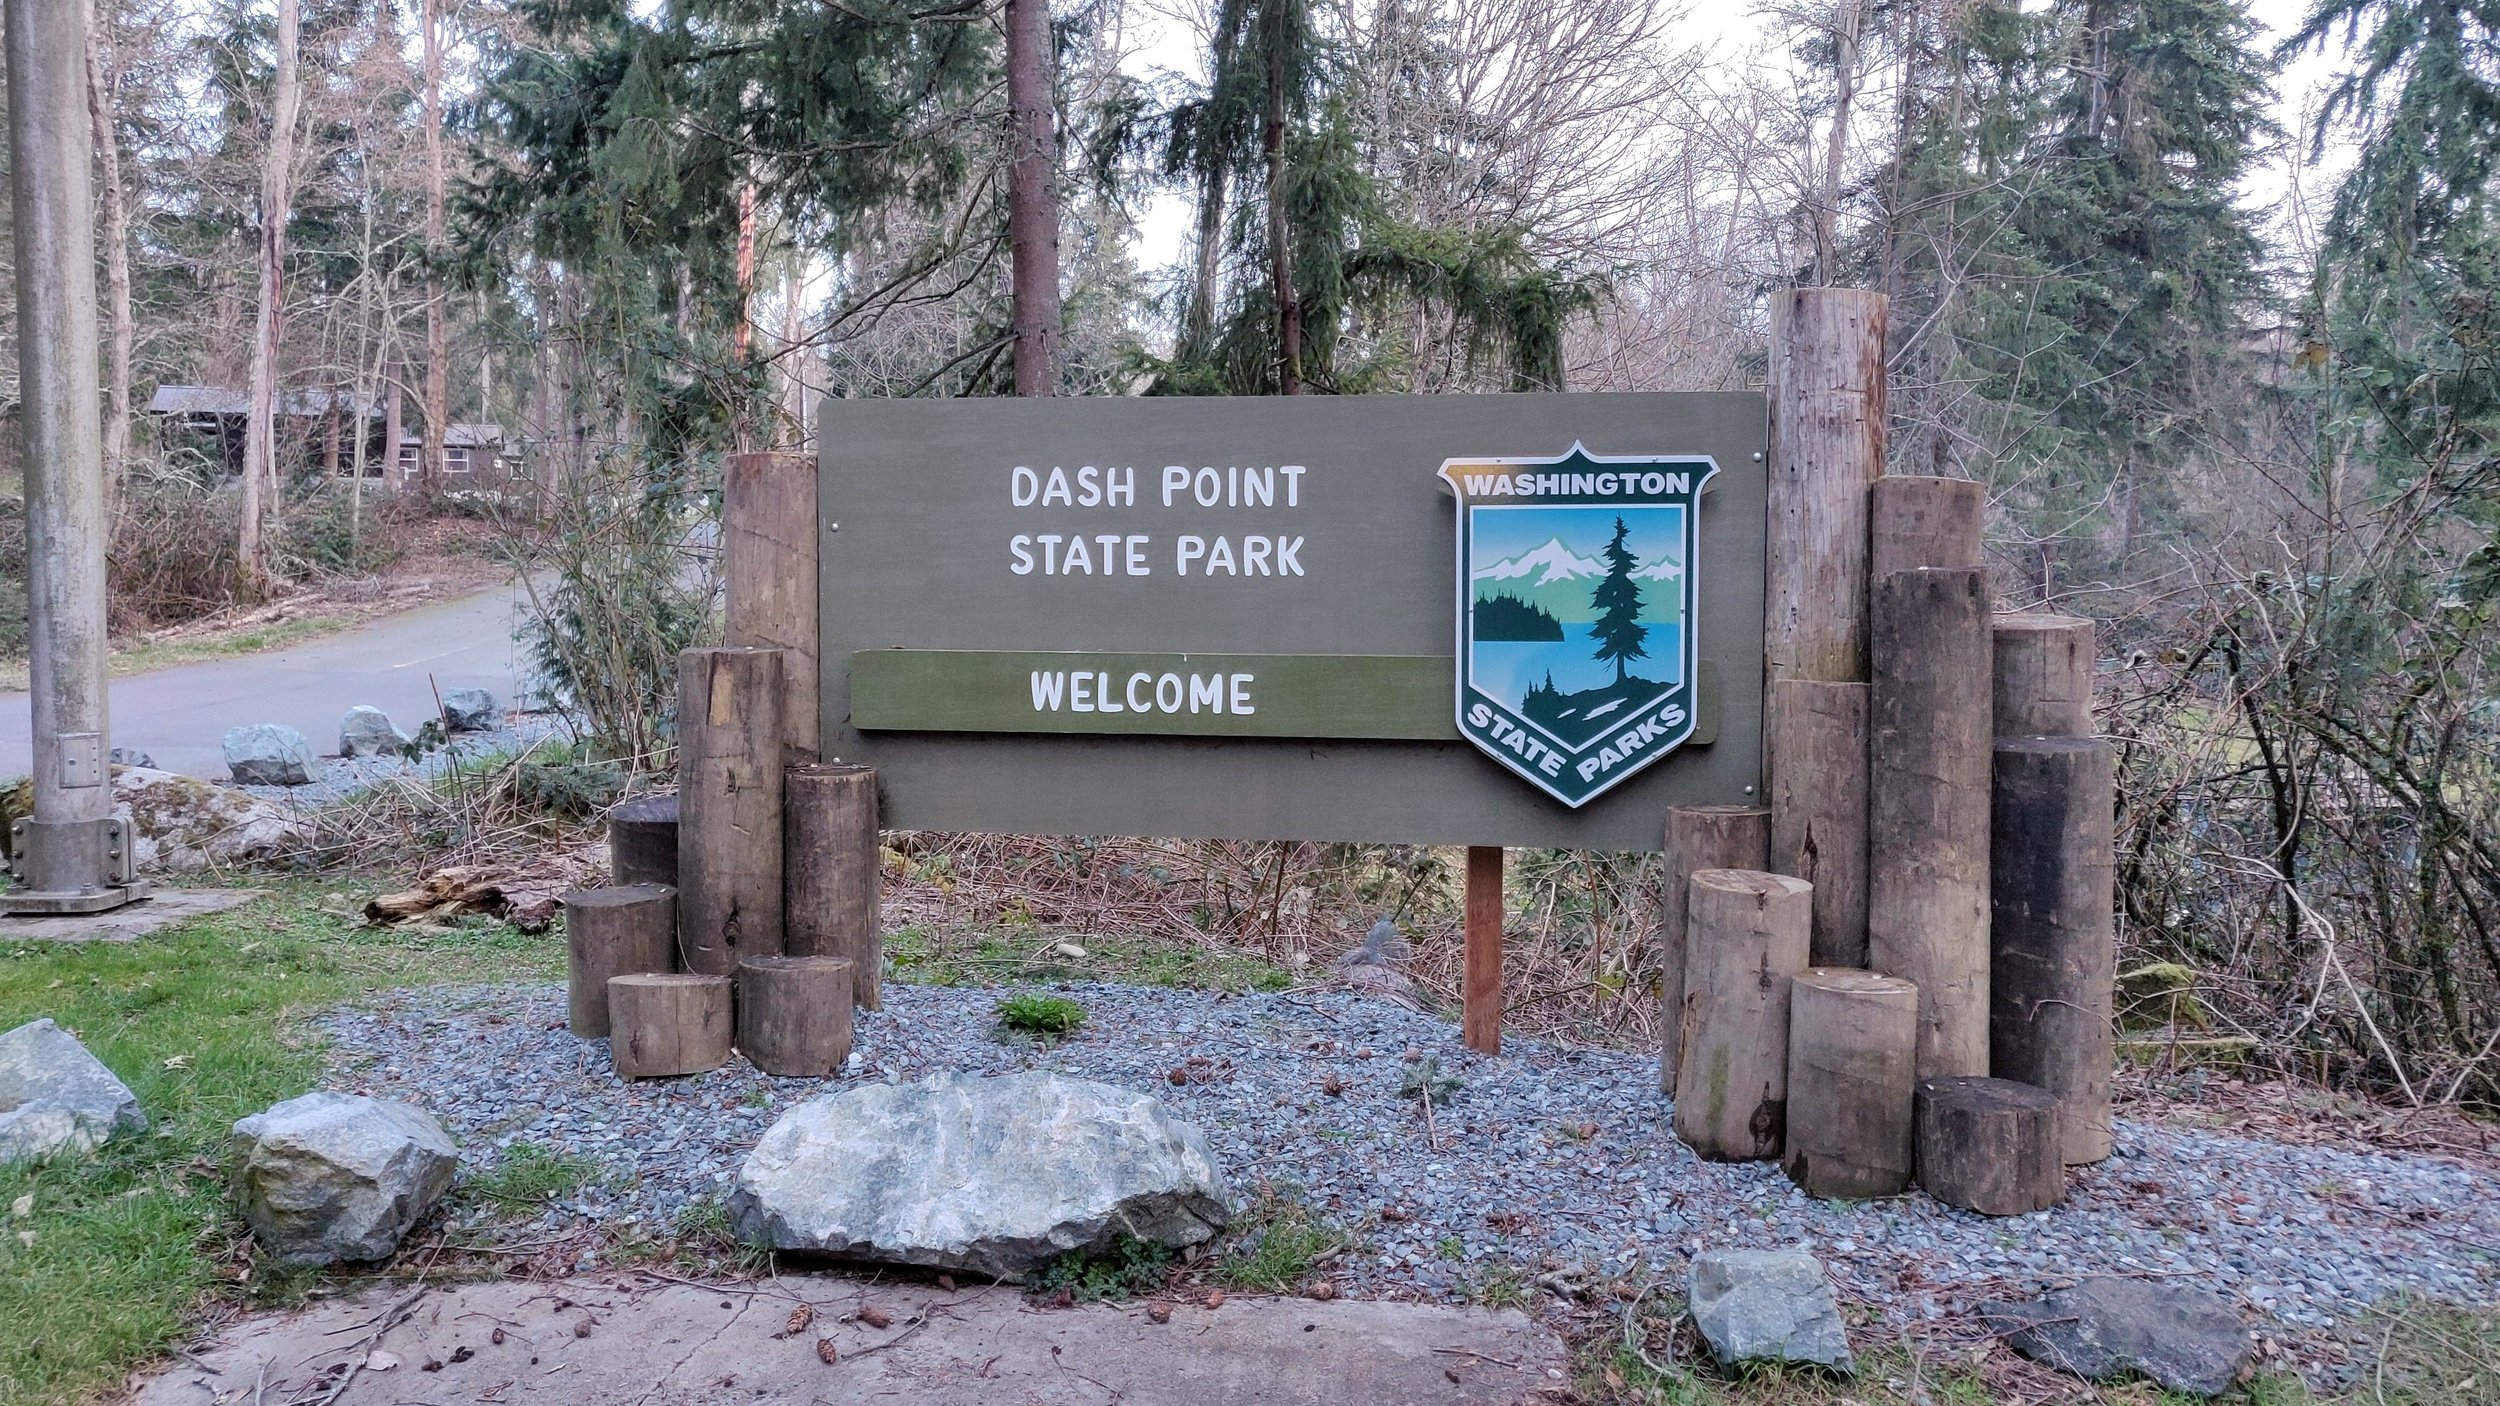 Dash Point State Park welcome sign